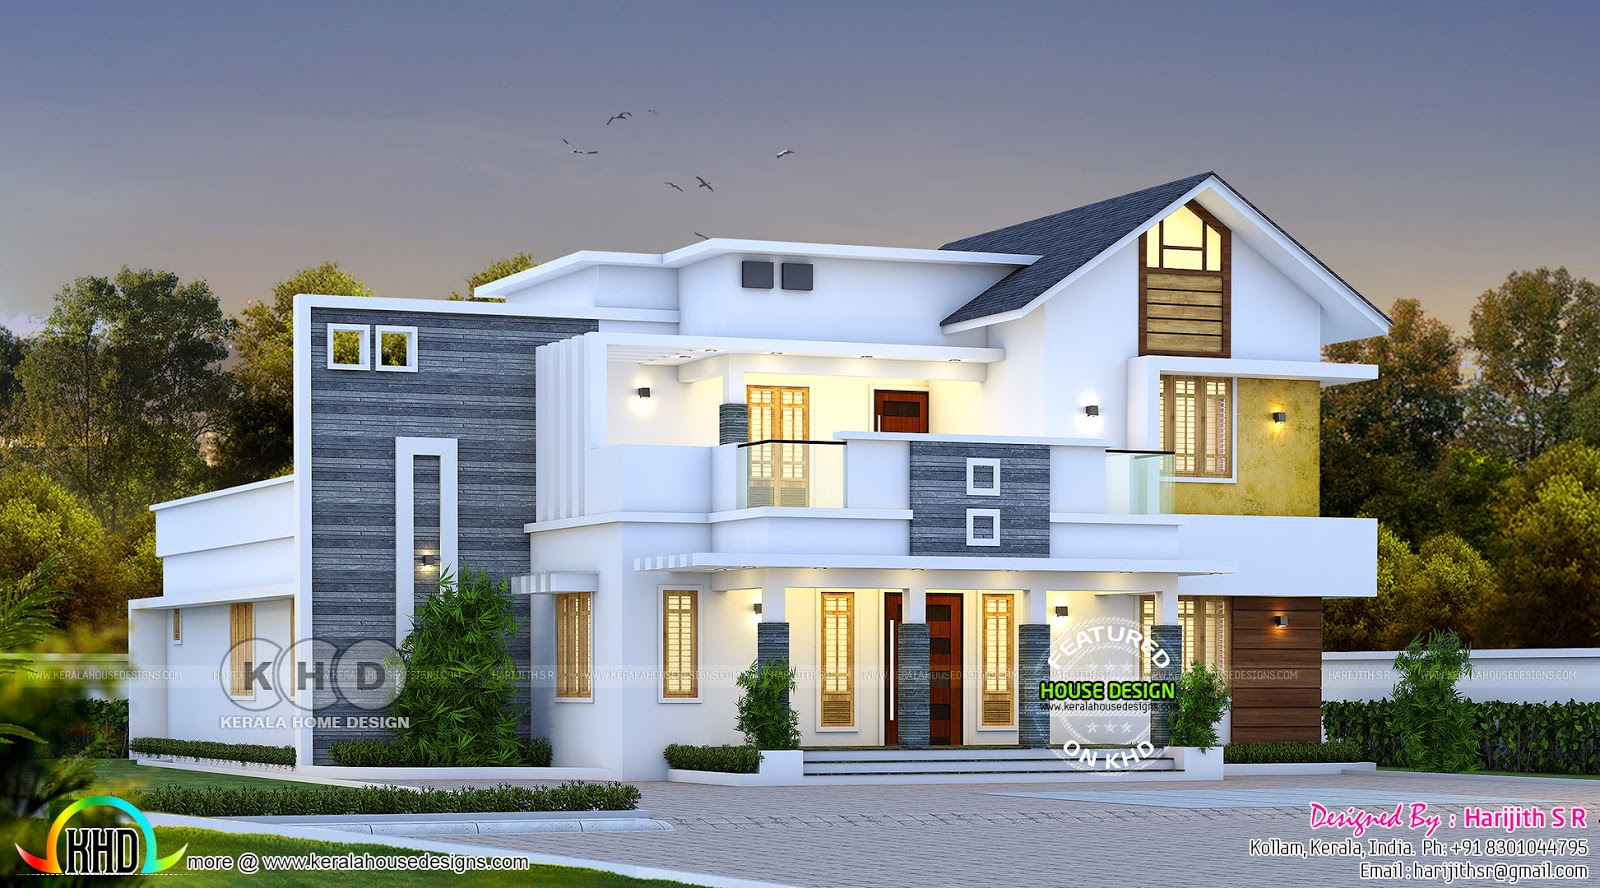 Mixed Roof Contemporary House Design Kerala Home Design And Floor Plans 8000 Houses